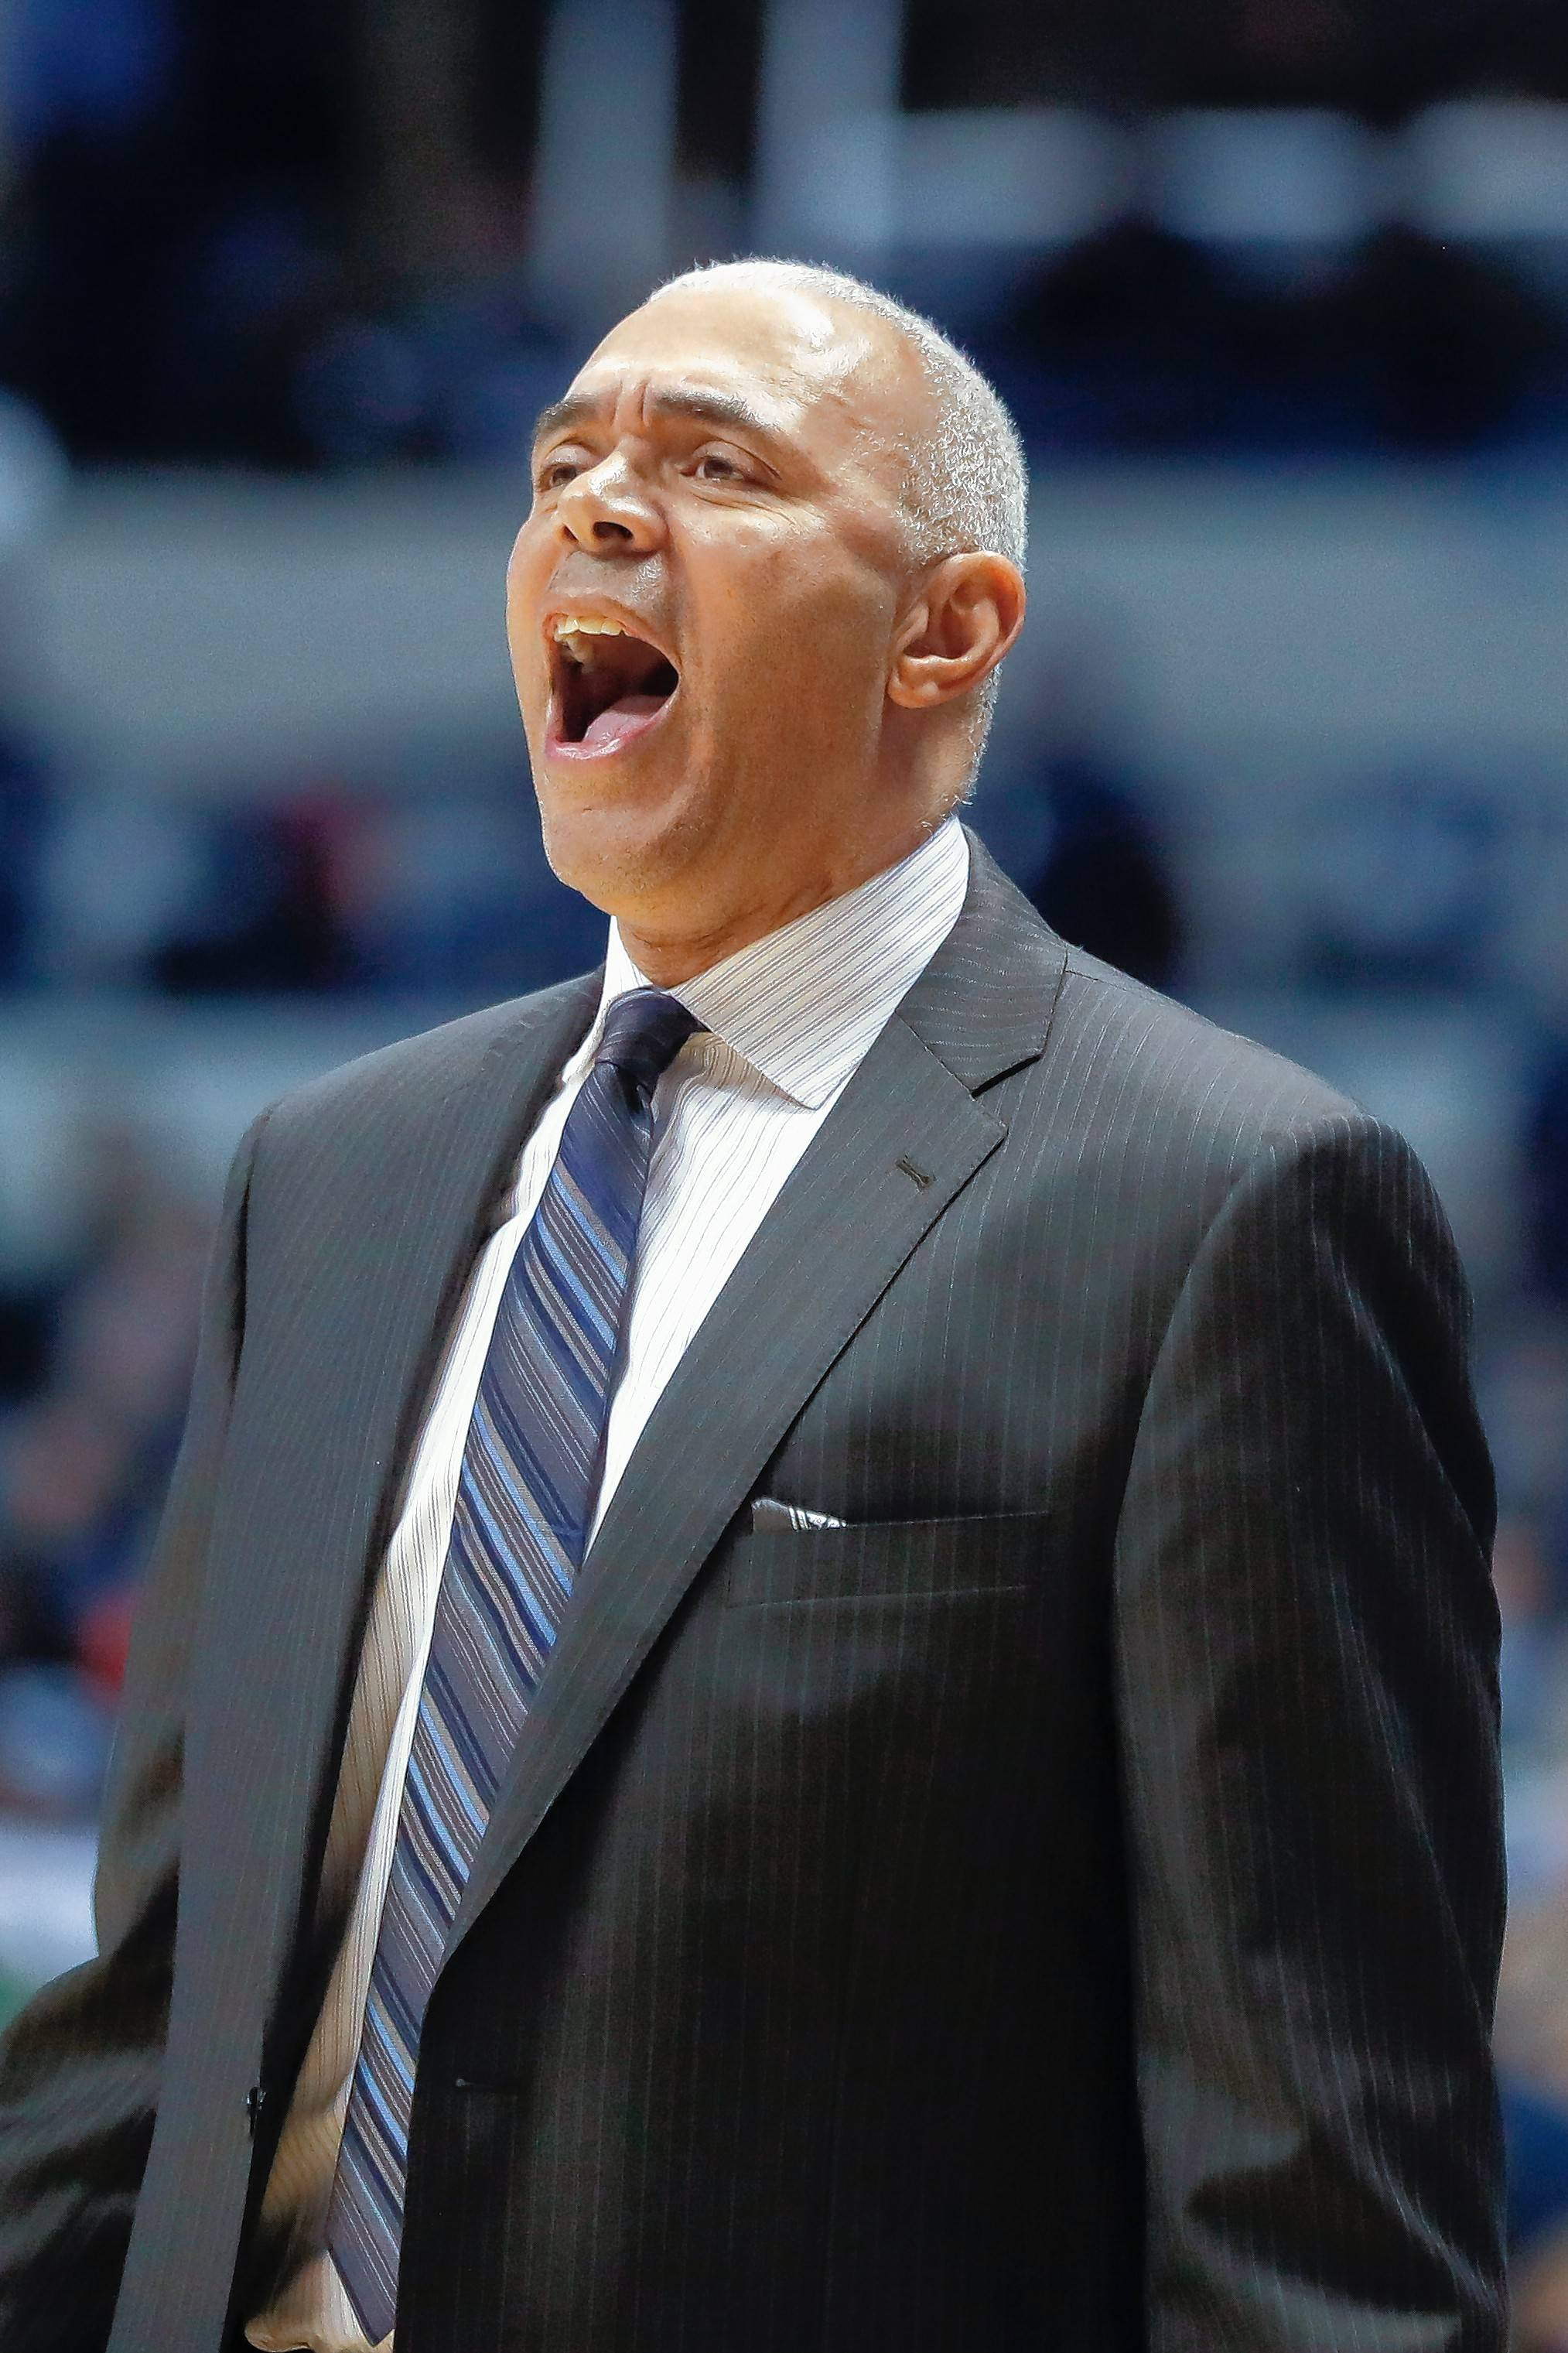 DePaul will officially open the new Wintrust Arena in the South Loop on Saturday against No. 14 Notre Dame. The Blue Demons are counting on several newcomers this season and head coach Dave Leitao believes the talent level is rising.